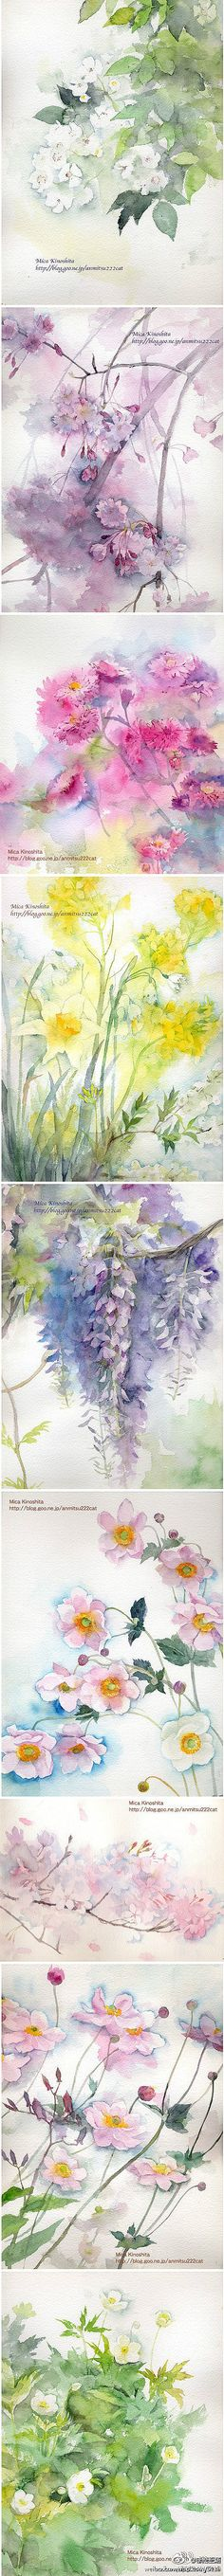 US to heart watercolor painted flower.  Author: Mika Kinoshita